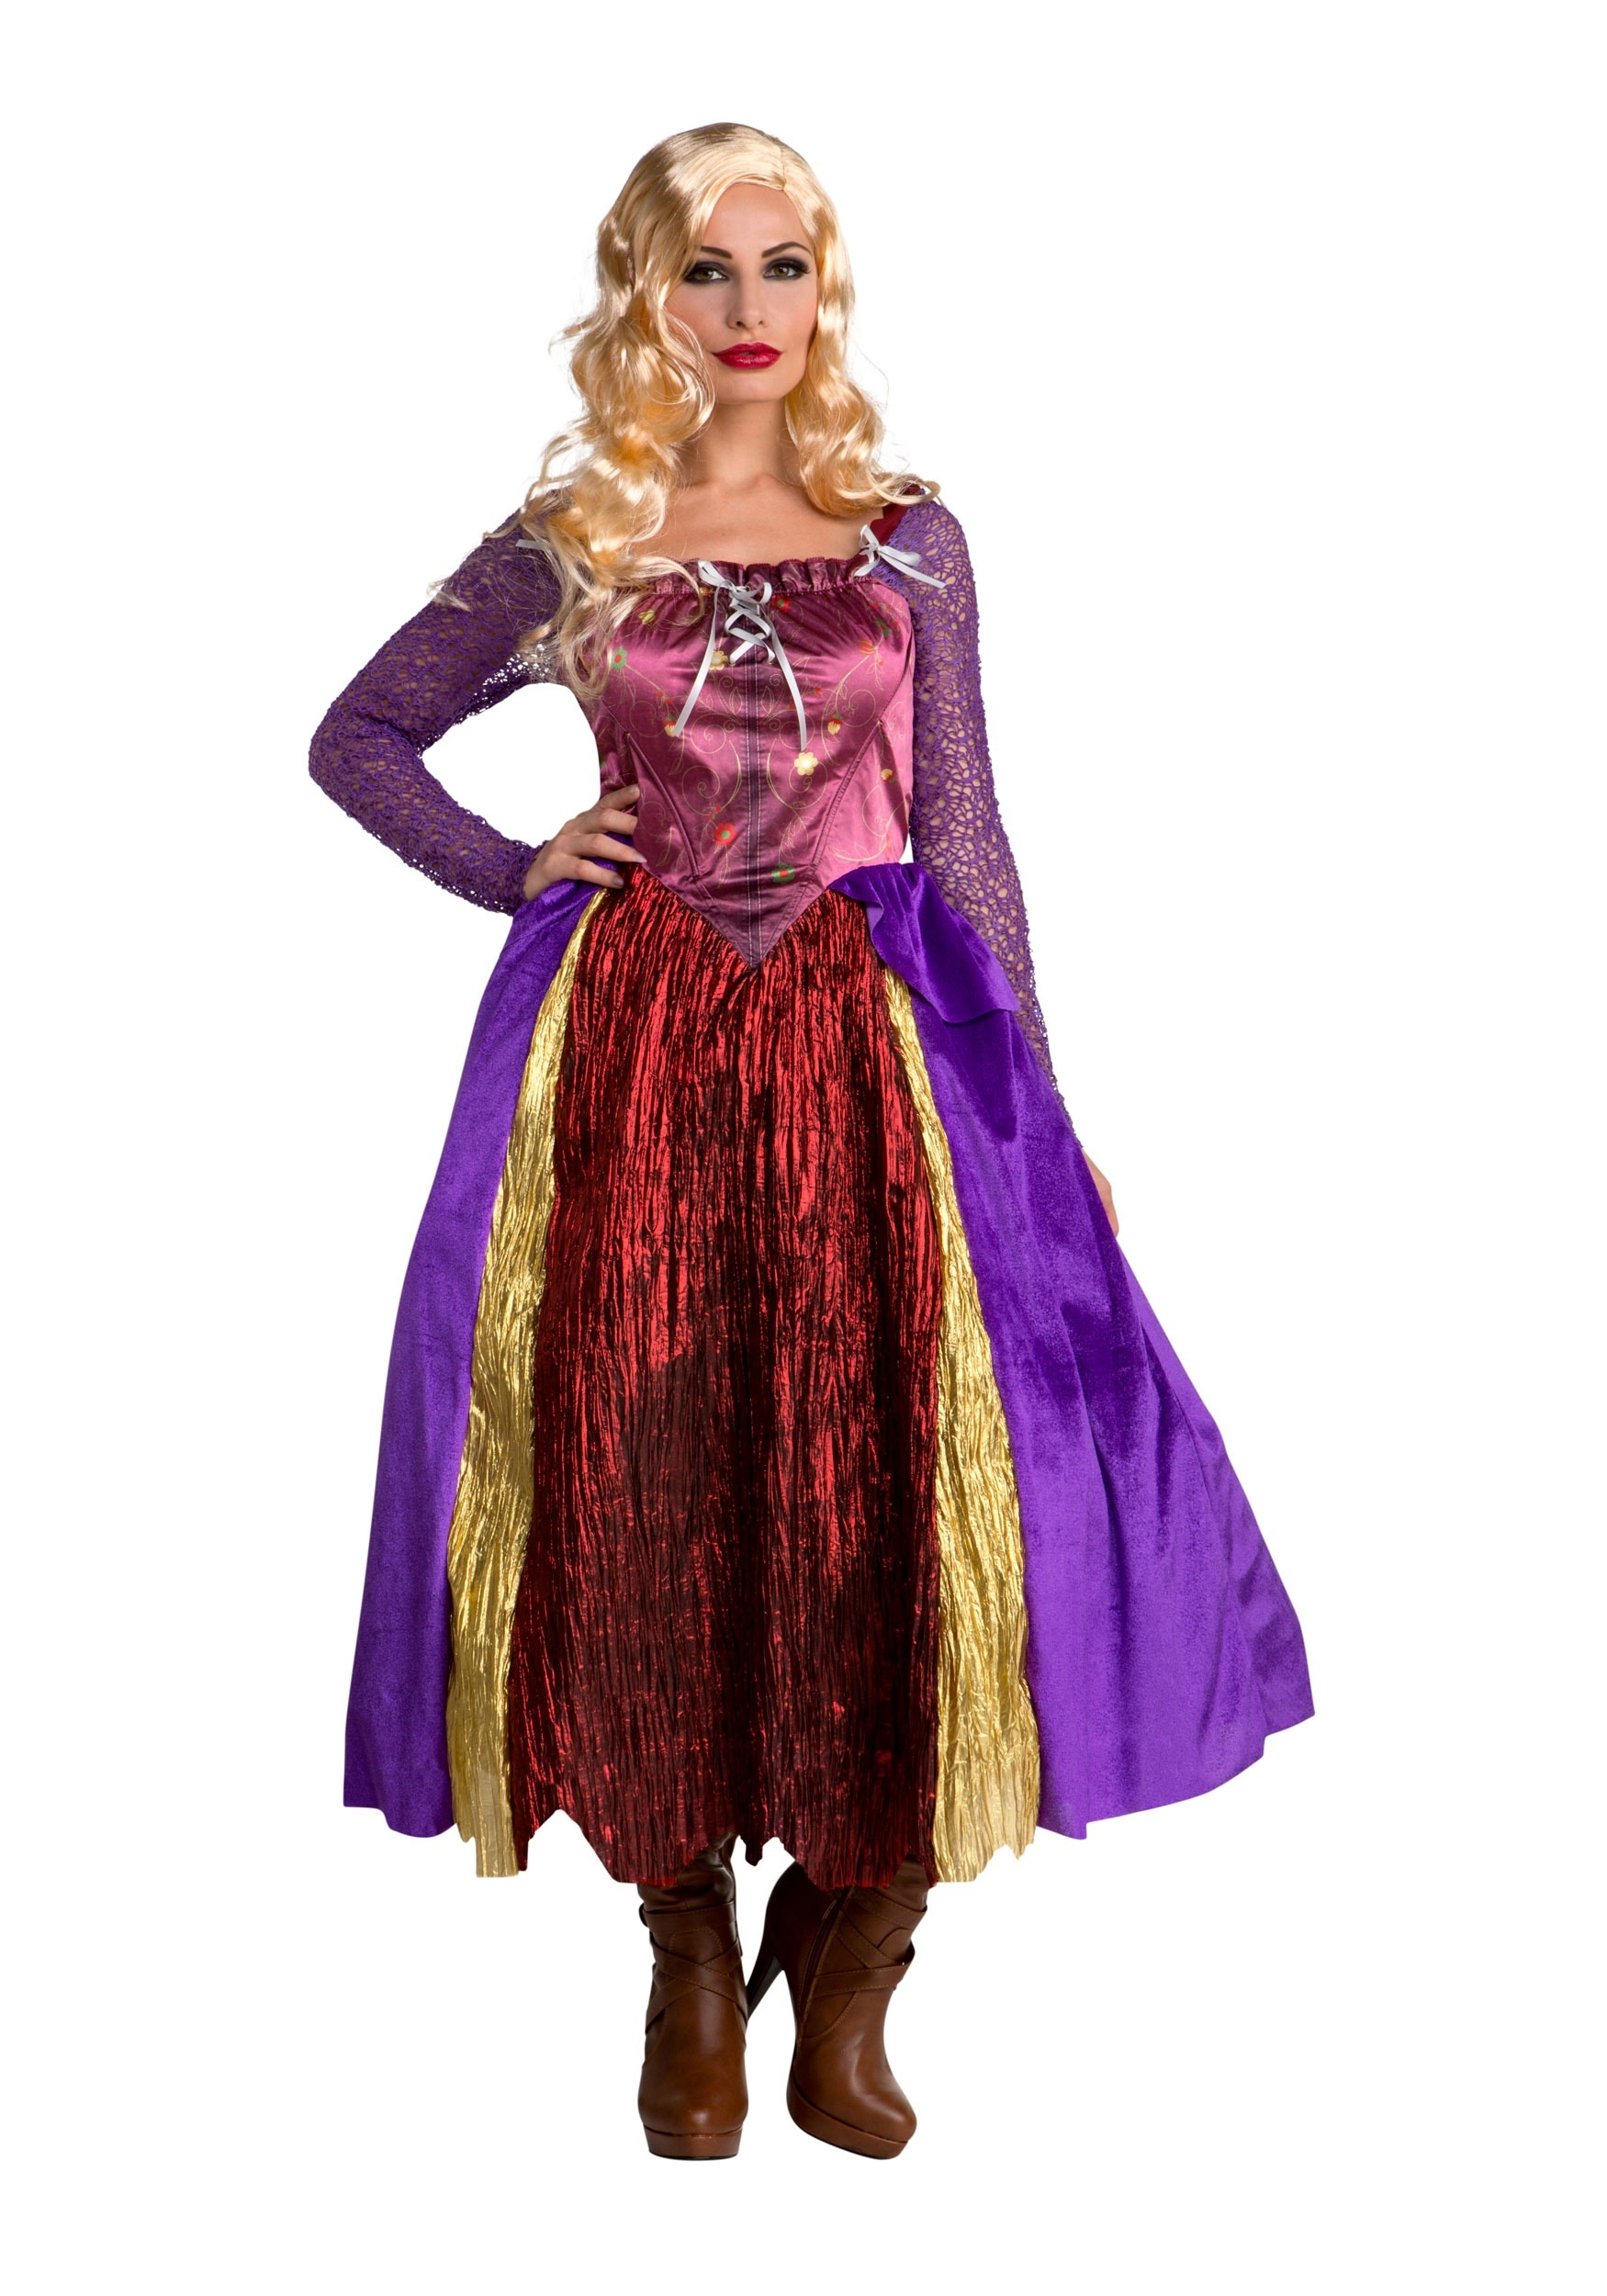 Silly Salem Sister Witch Costume for Women